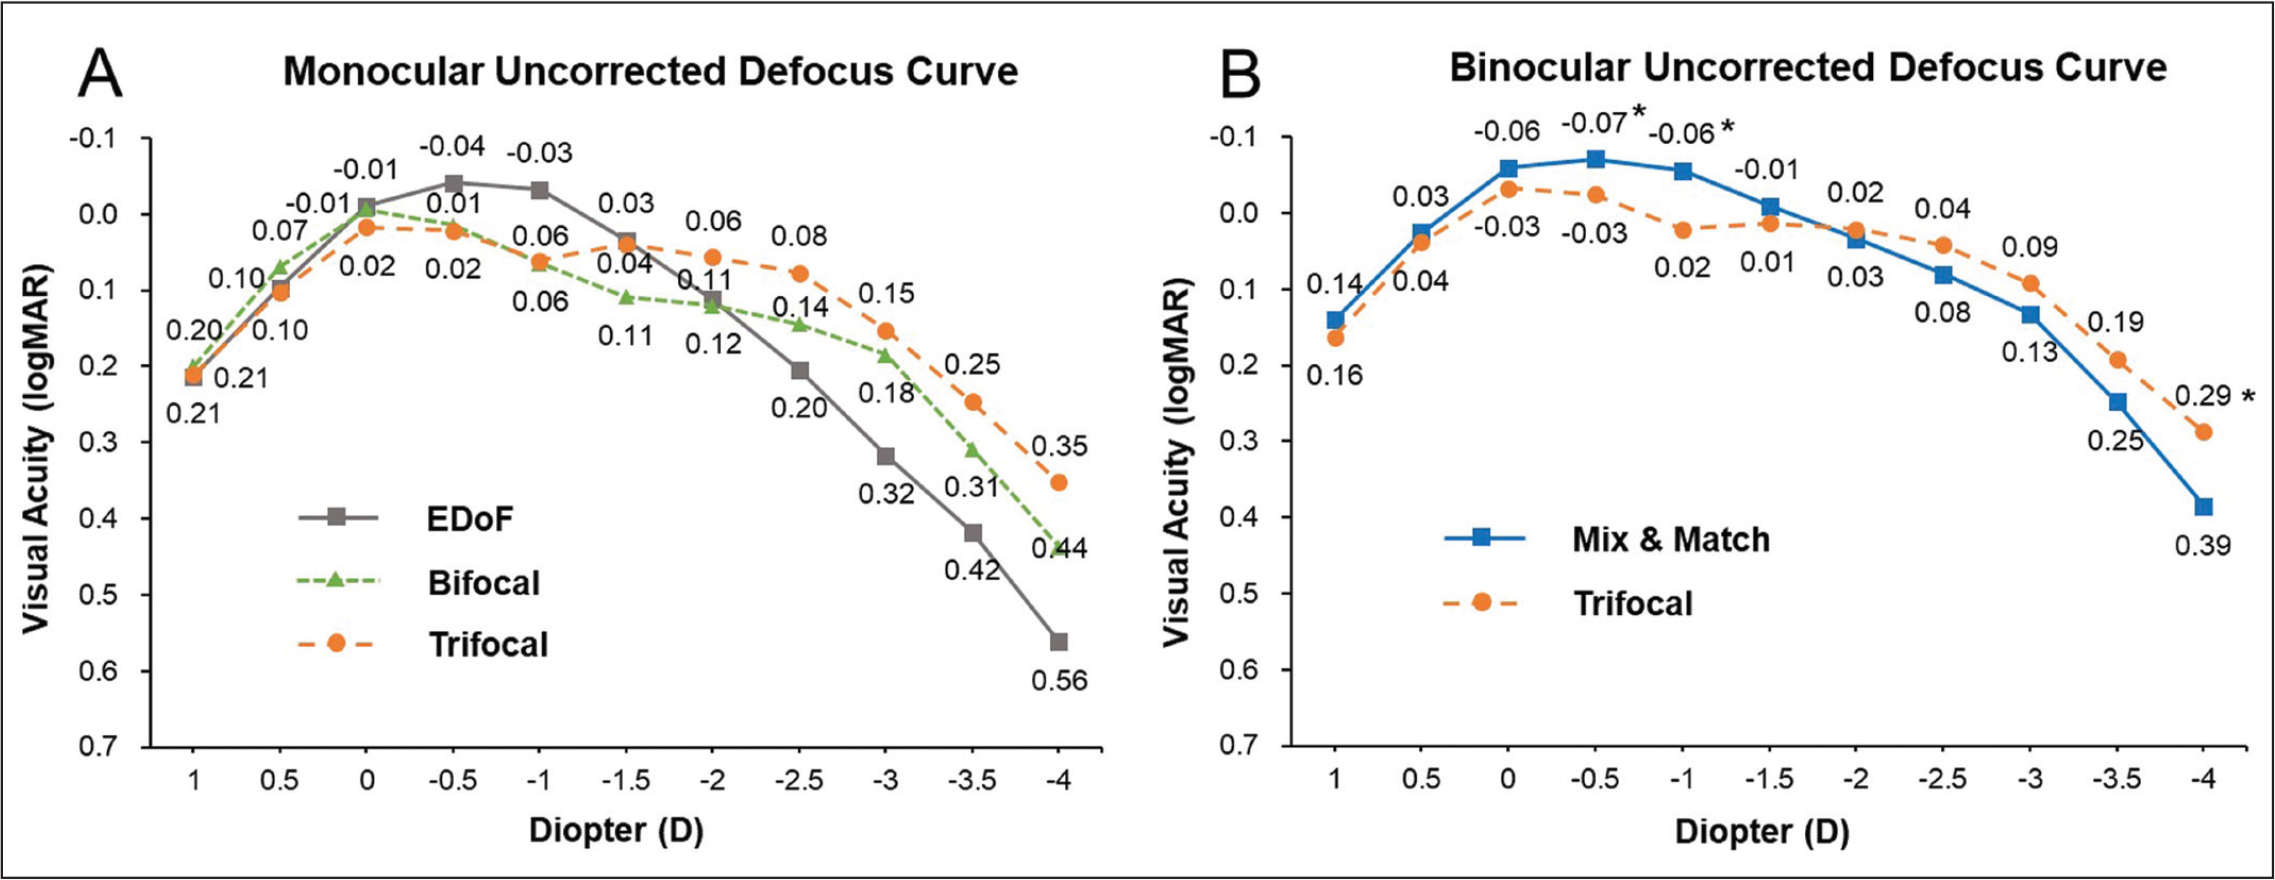 (A) Mean monocular defocus curve of eyes implanted with the TECNIS Symfony ZXR00 (Johnson & Johnson Vision), TECNIS bifocal ZLB00 +3.25 diopters (D) (Johnson & Johnson Vision), and AcrySof IQ PanOptix trifocal (Alcon Laboratories, Inc) intraocular lenses. (B) Mean binocular defocus curves of the mix-and-match group and the trifocal group. *P < .05. EDOF = extended depth of focus; D = diopters